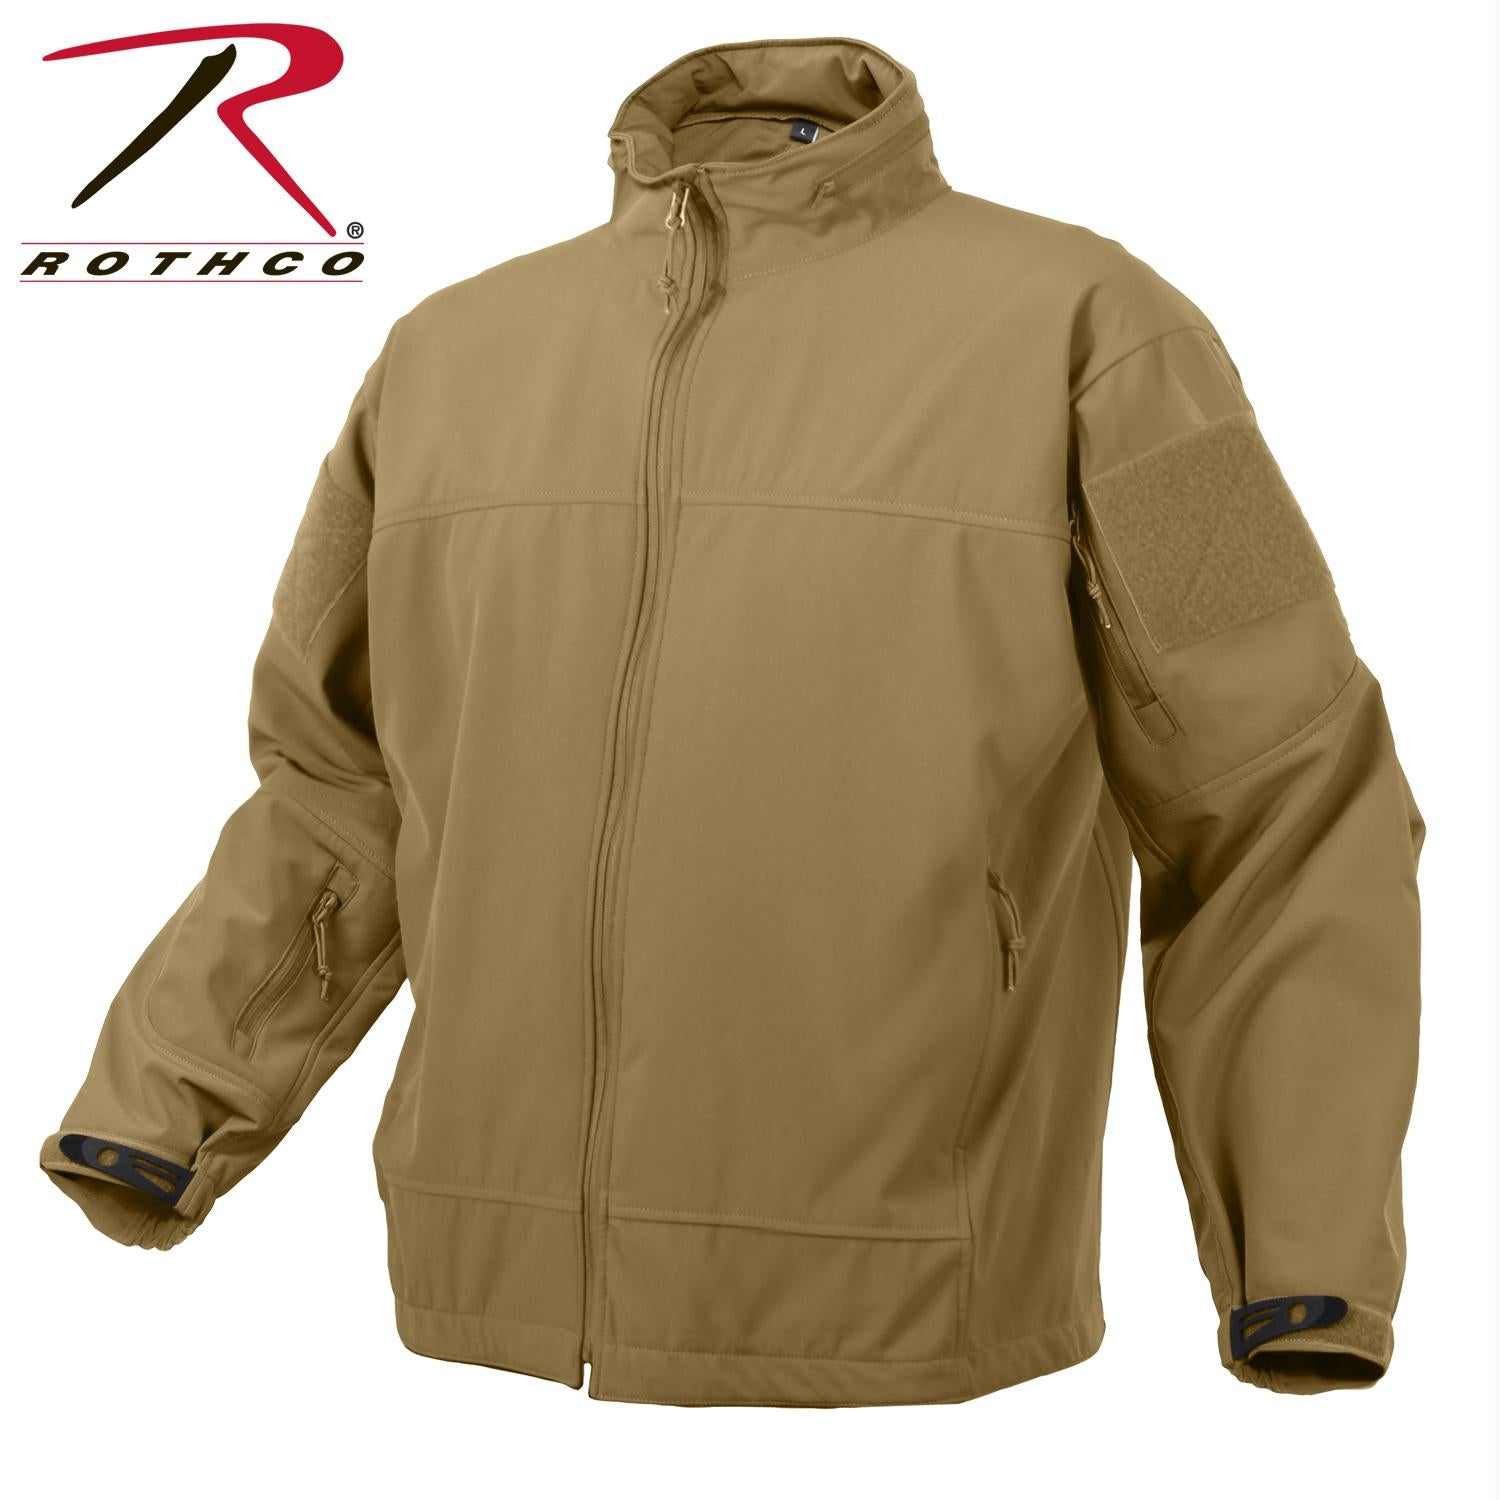 Rothco Covert Ops Light Weight Soft Shell Jacket - Coyote Brown / S